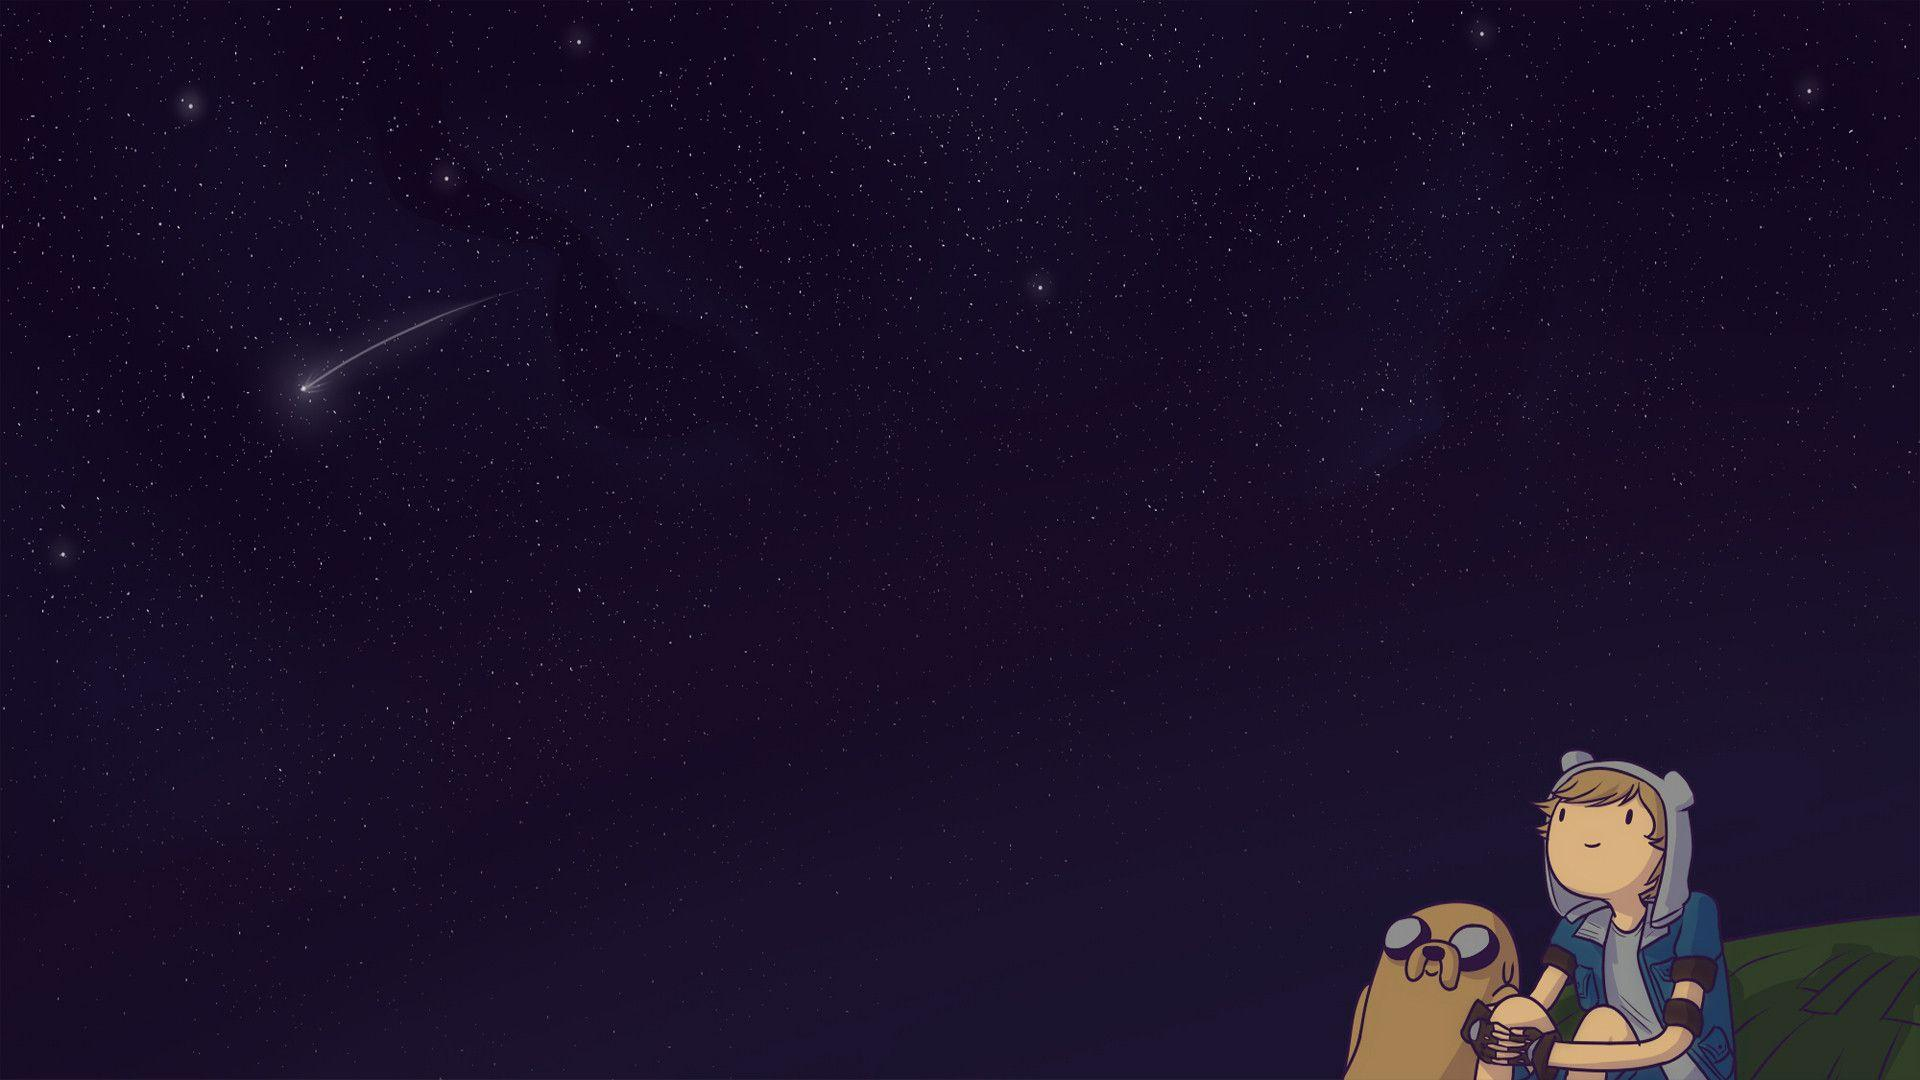 Adventure Time HD Wallpaper 1920x1080